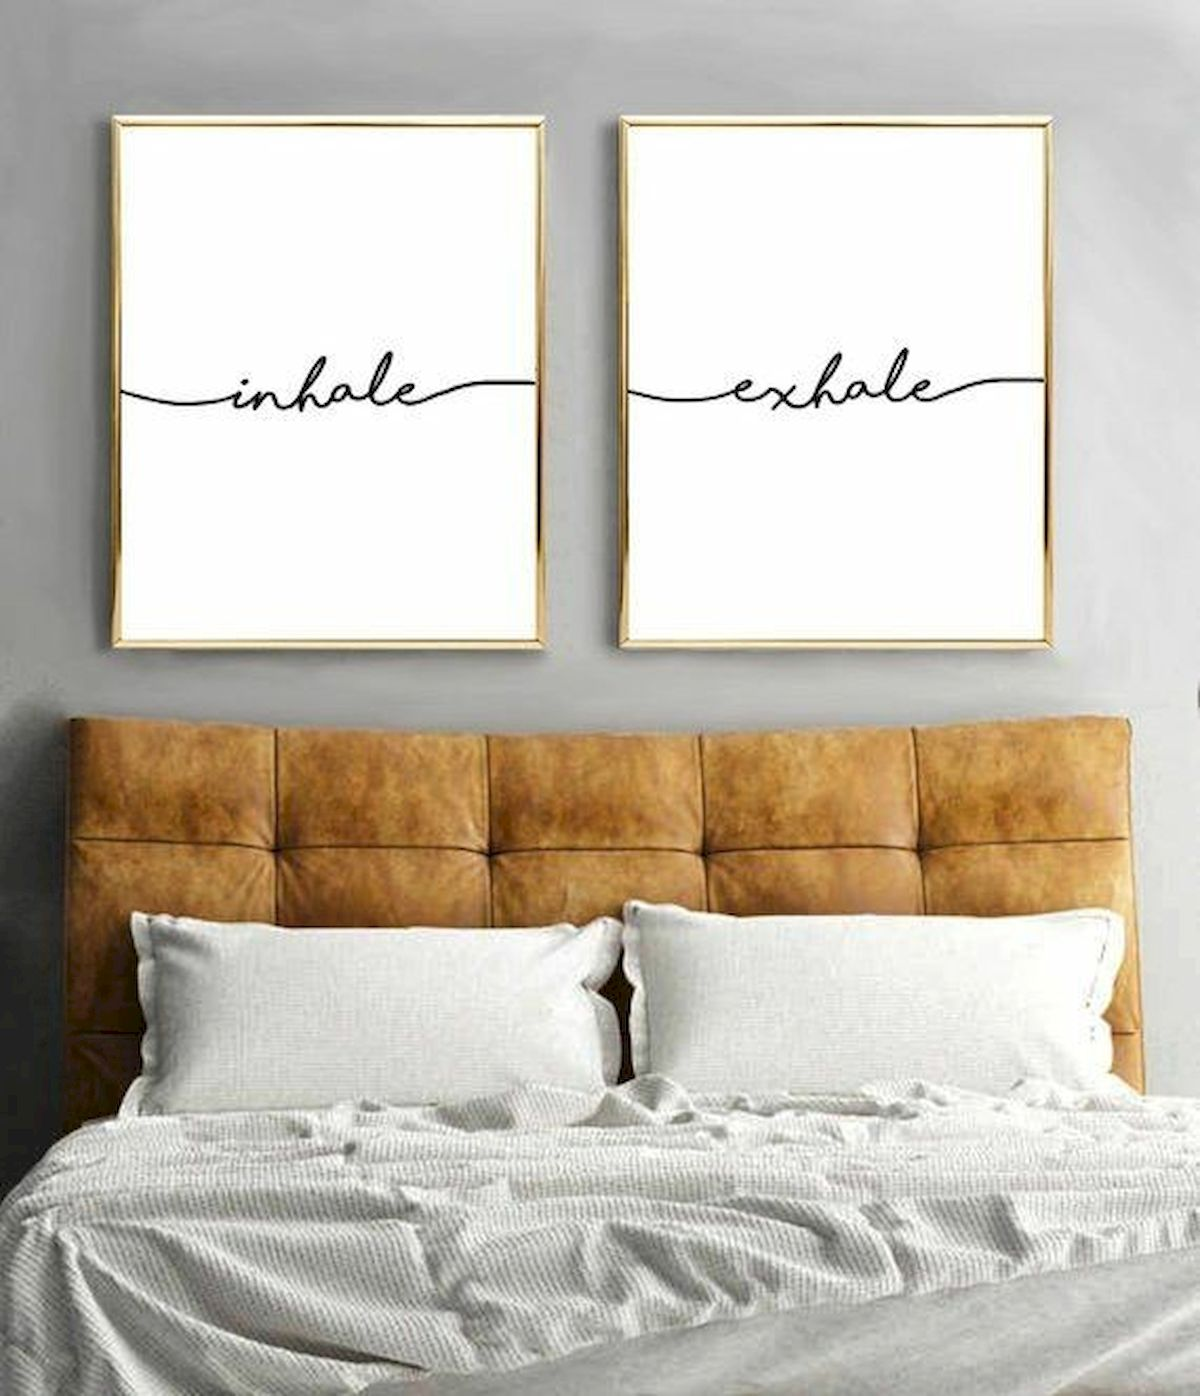 70 Simple Wall Bedroom Decor and Design Ideas (42)